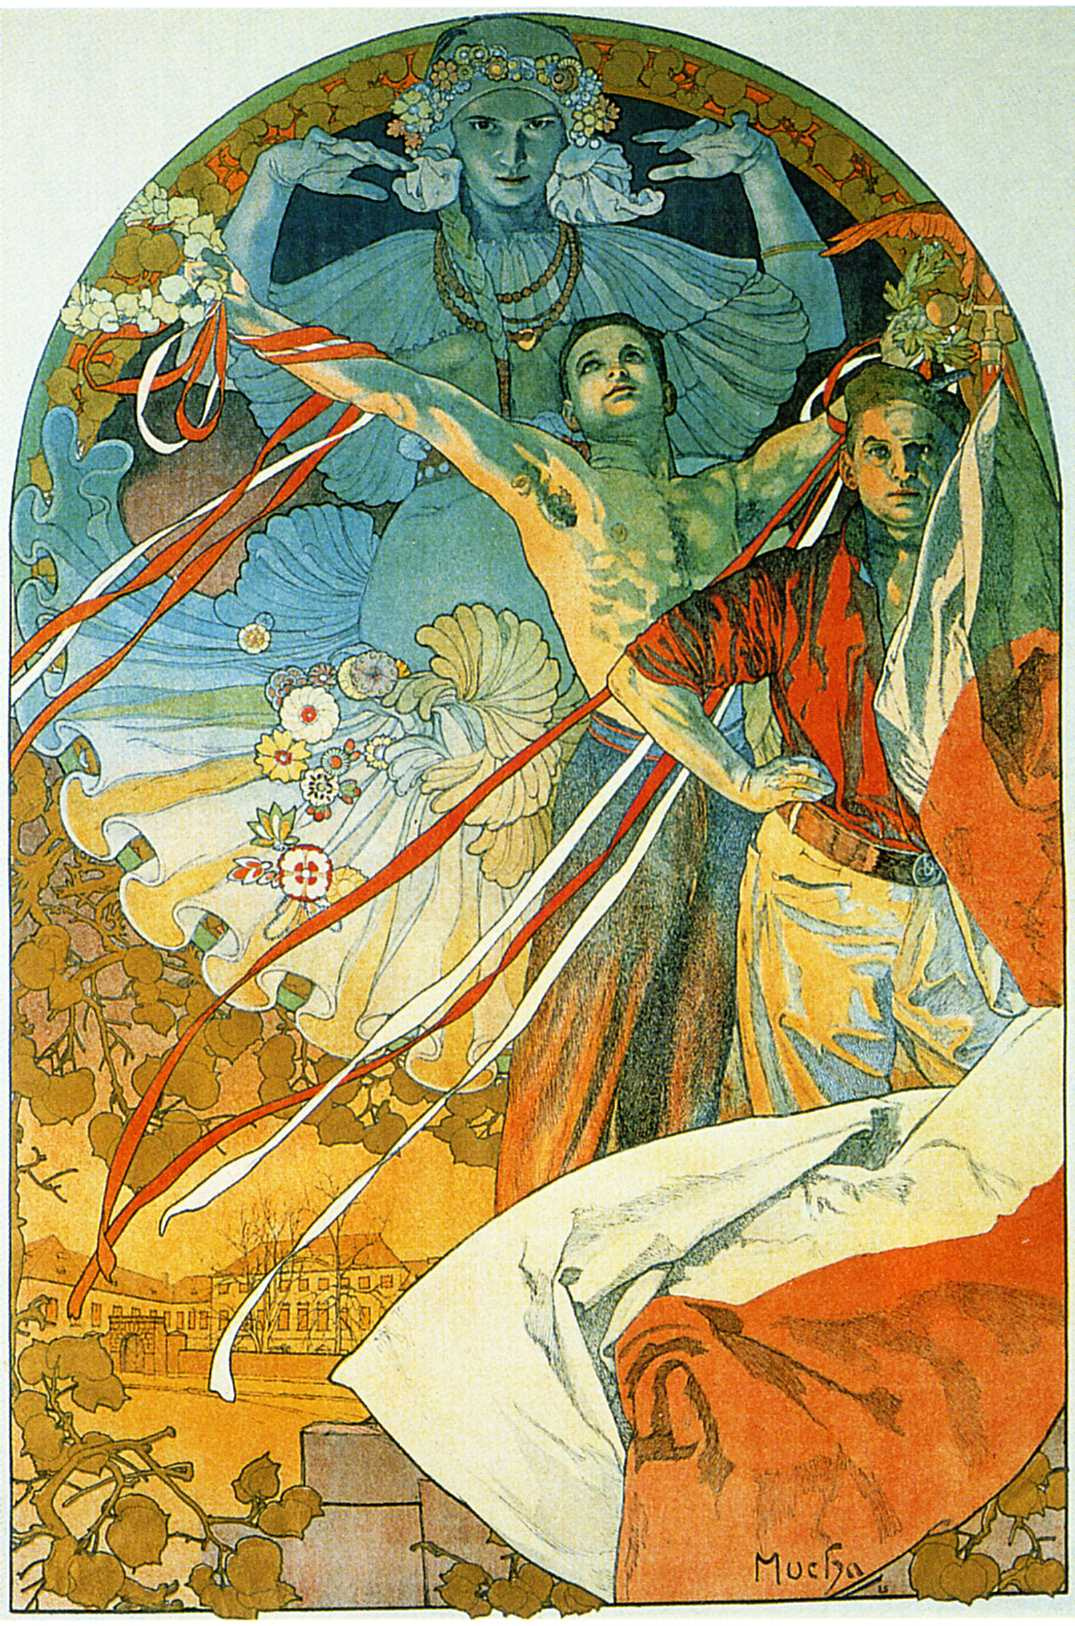 Alfons Mucha. Promotional poster for the Eighth festival Sokol in Prague in 1926